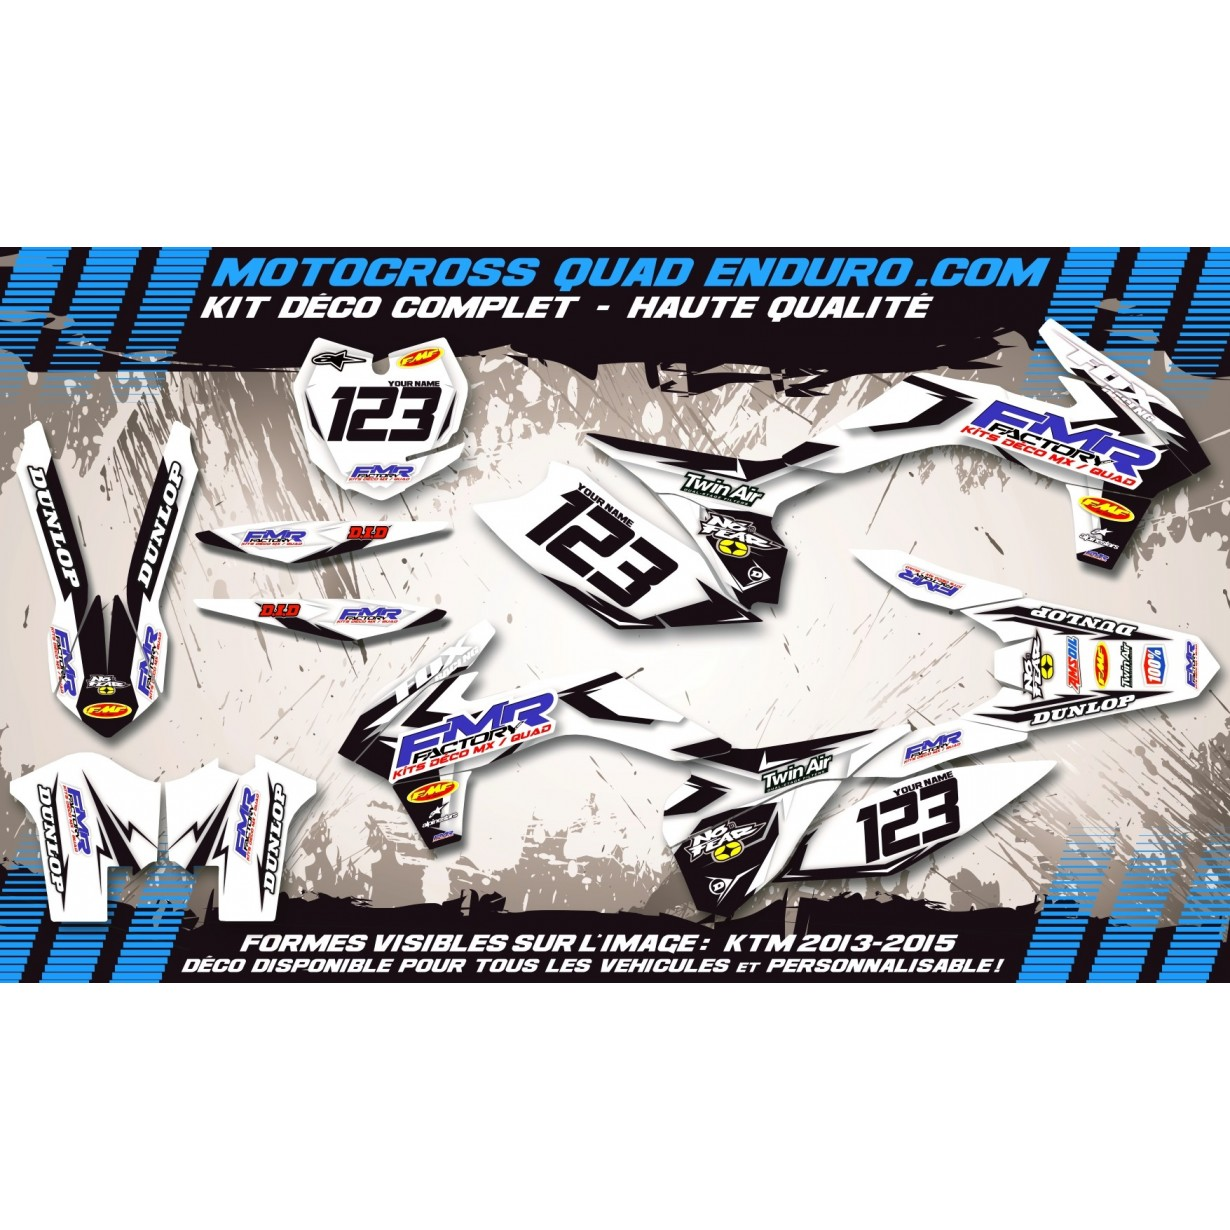 KIT DÉCO Perso MX 04-07 (2t) Fmr factory WT Edition MA13WT